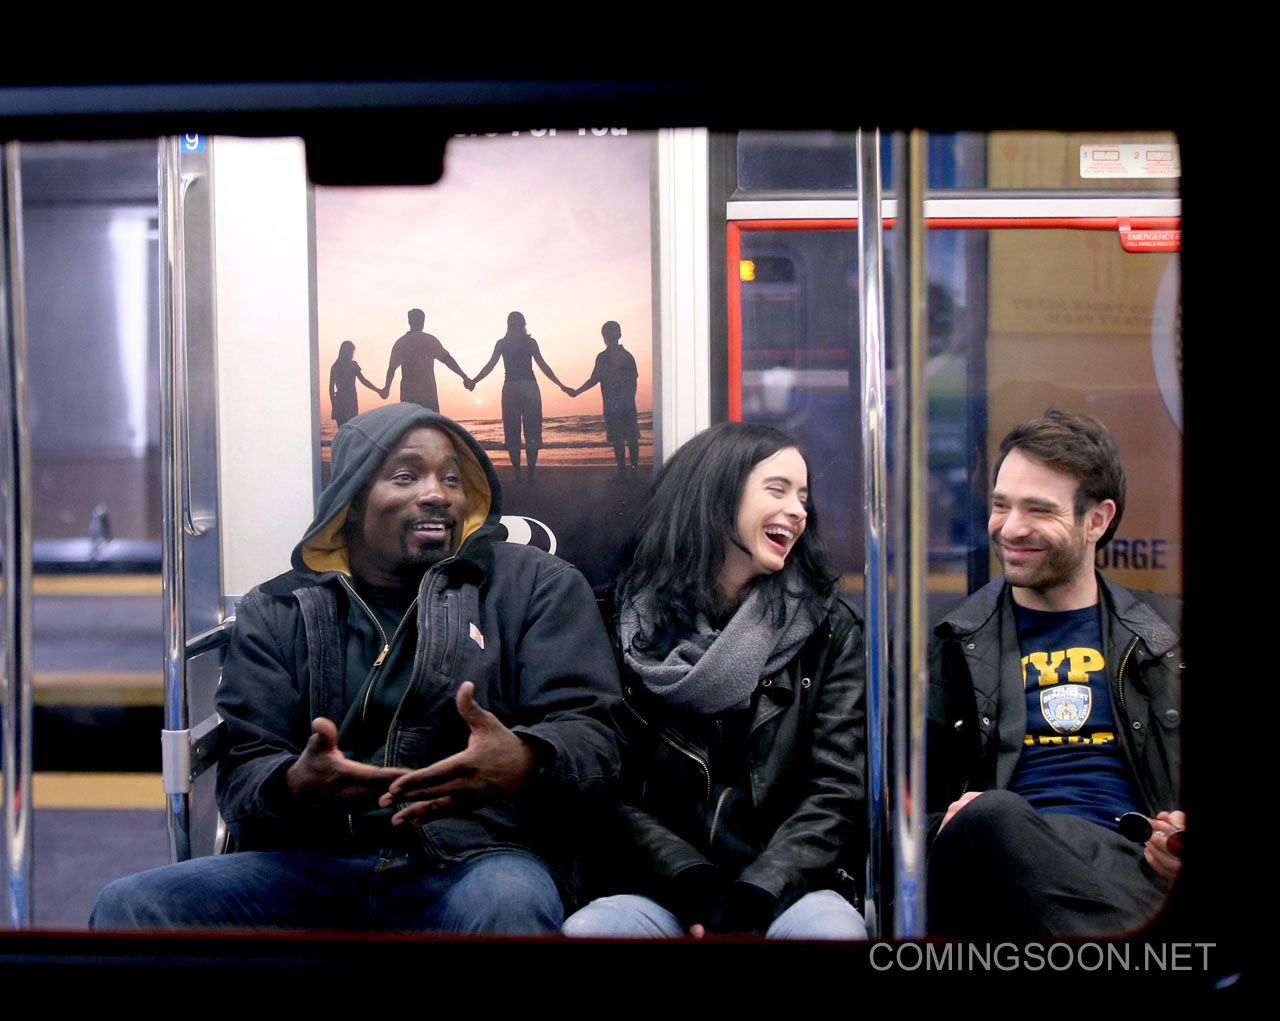 """NEW YORK, NY - FEBRUARY 10: Mike Colter, Krysten Ritter, Charlie Cox filming Marvel's """"The Defenders"""" on February 10, 2017 in New York City. (Photo by Steve Sands/GC Images)"""